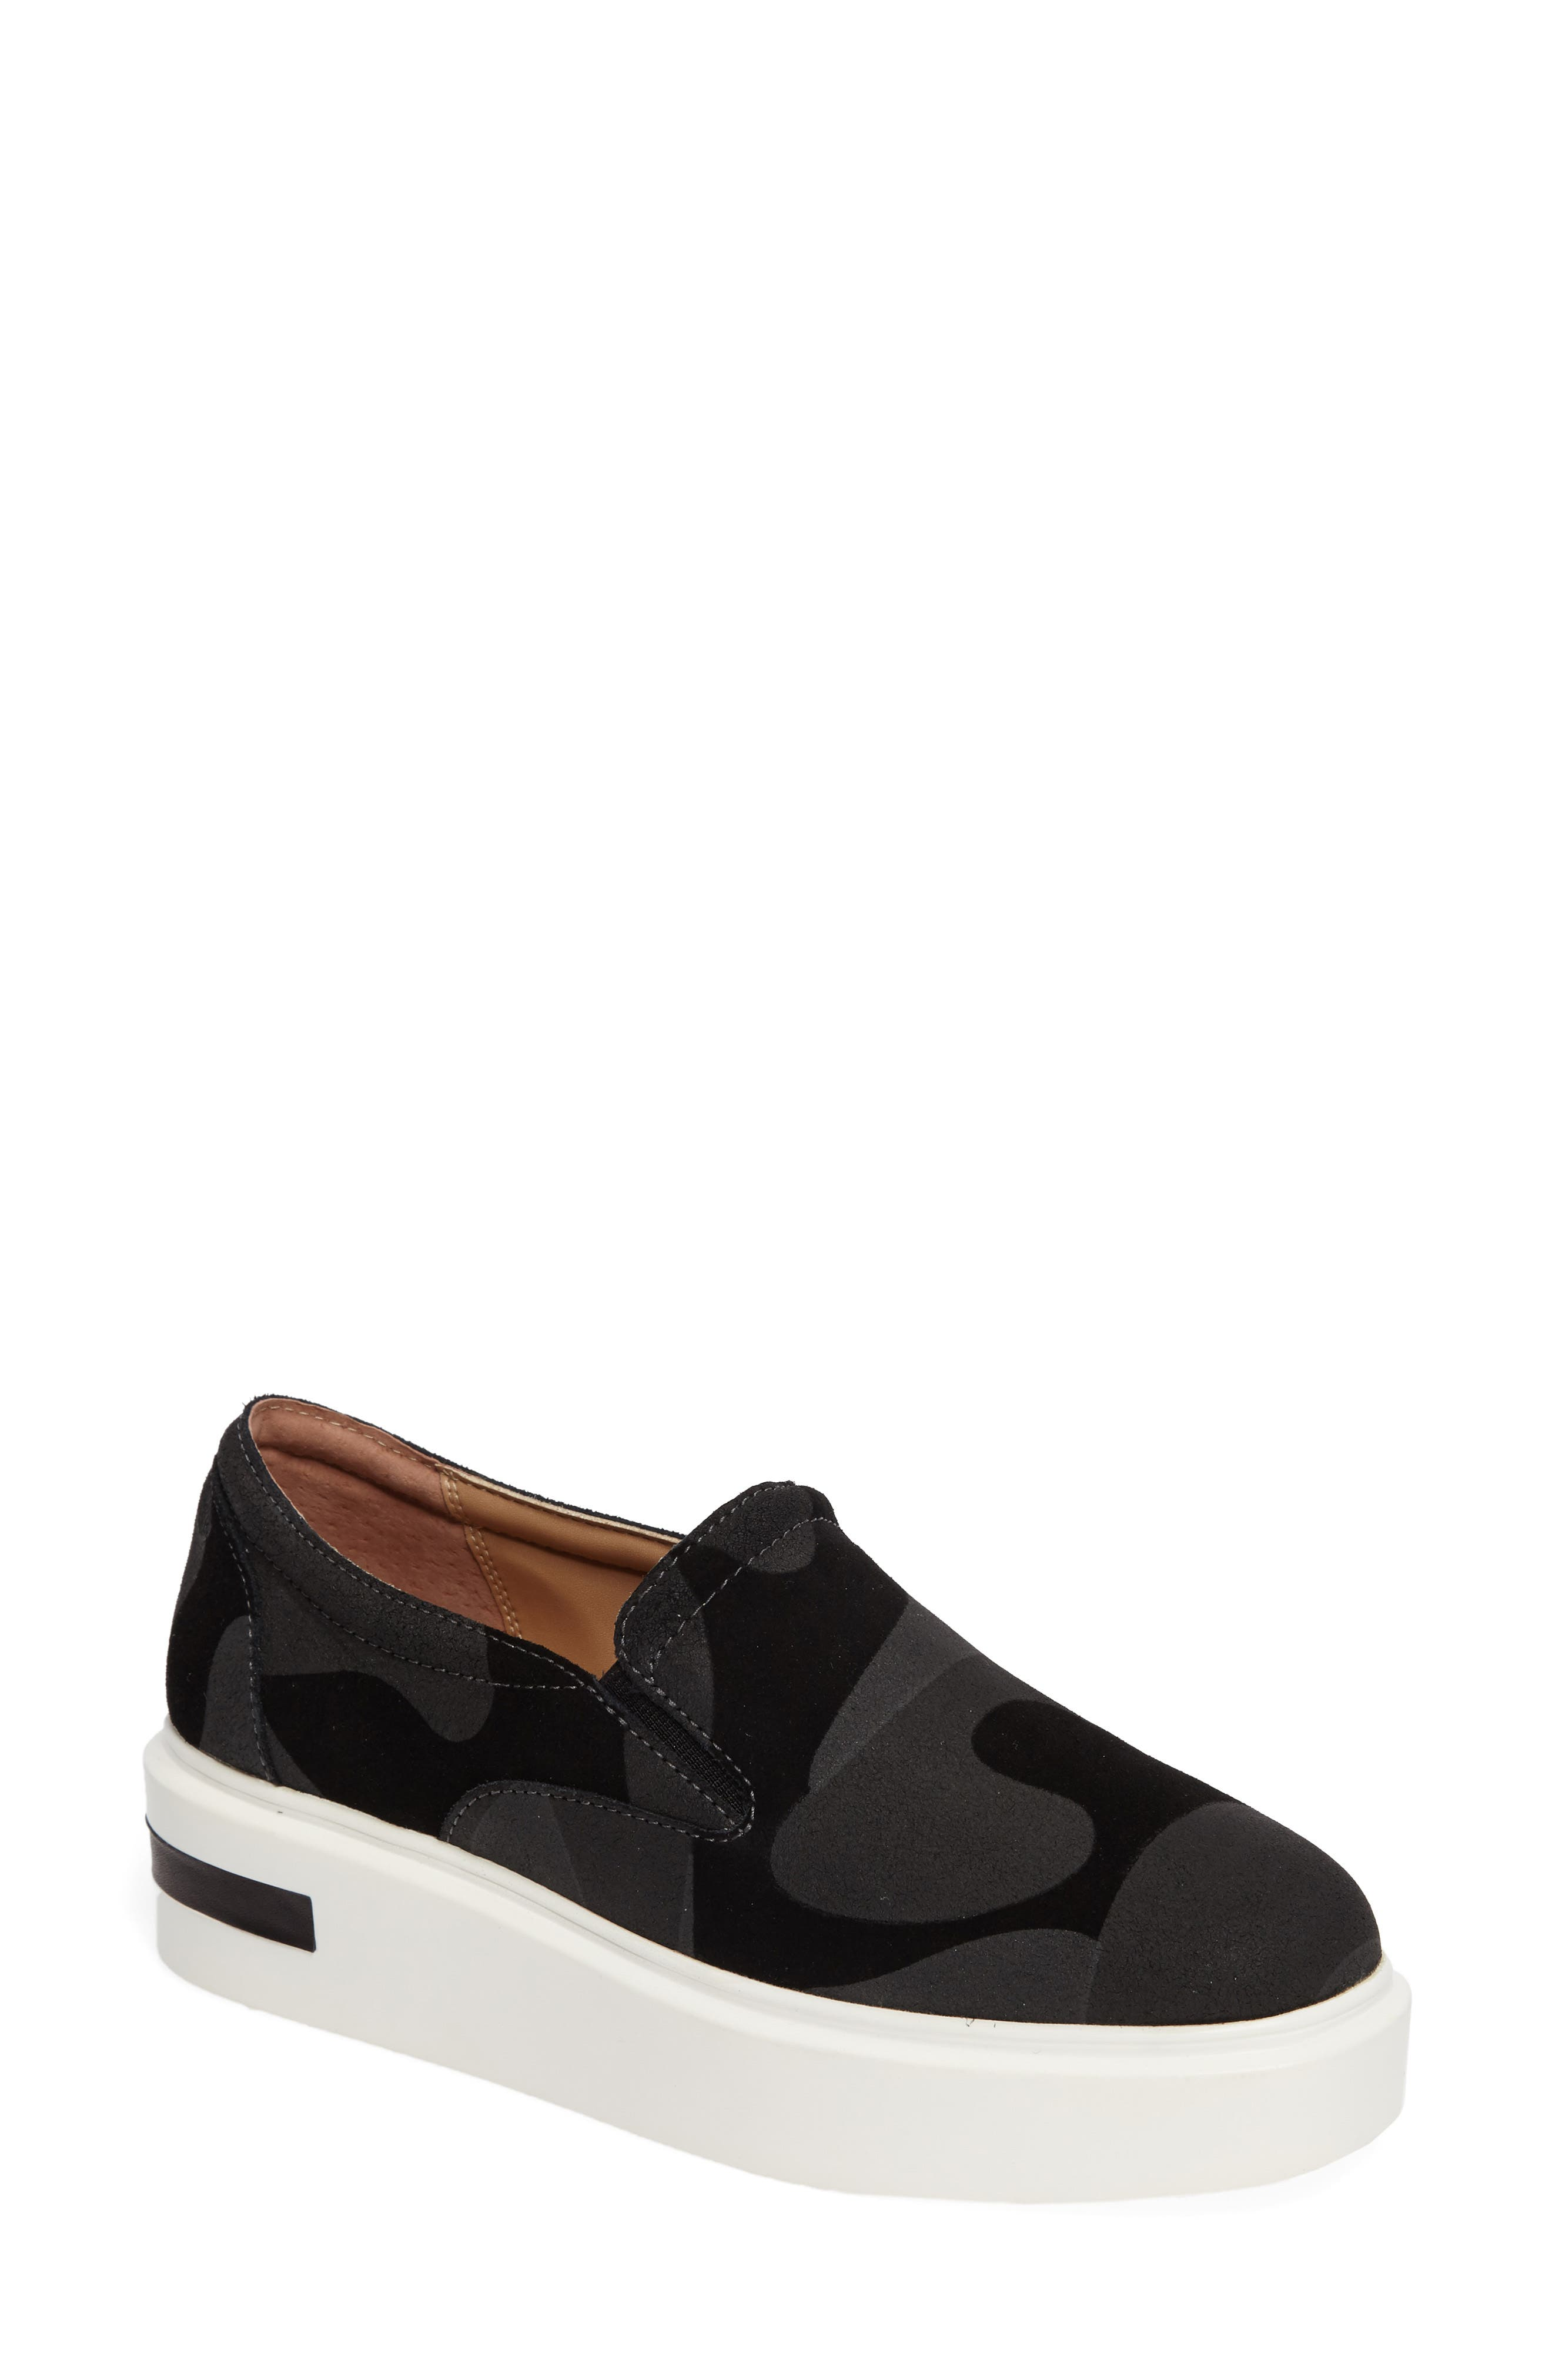 Fairfax Platform Sneaker,                         Main,                         color, 004